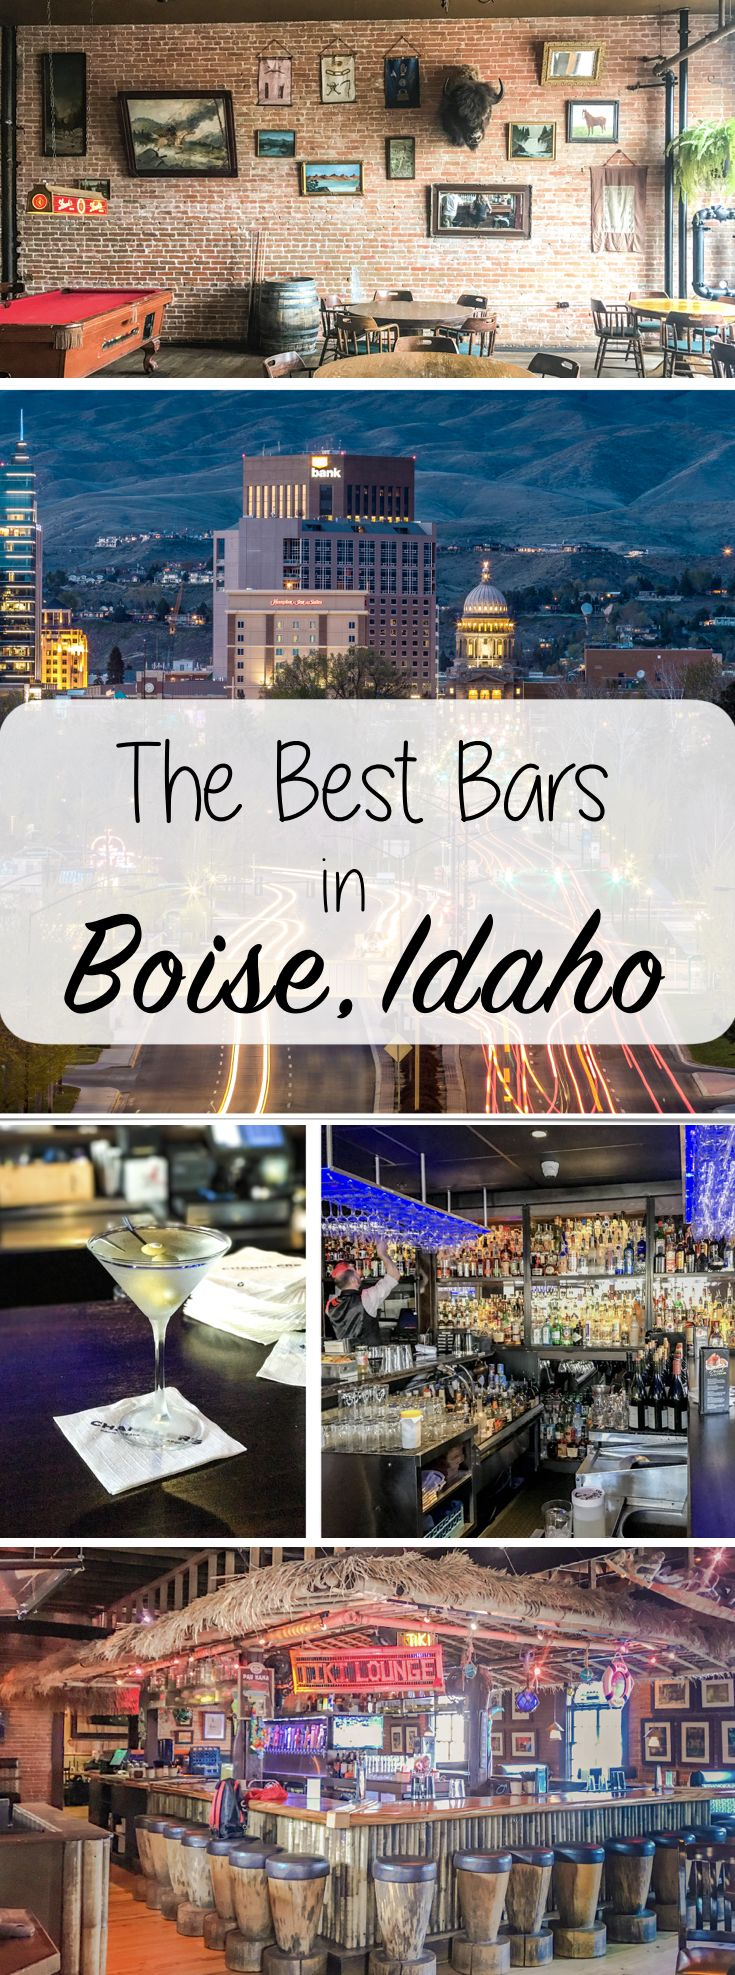 The Best Bars in Boise, Idaho. Idaho Travel Guide: Where to drink in downtown Boise.